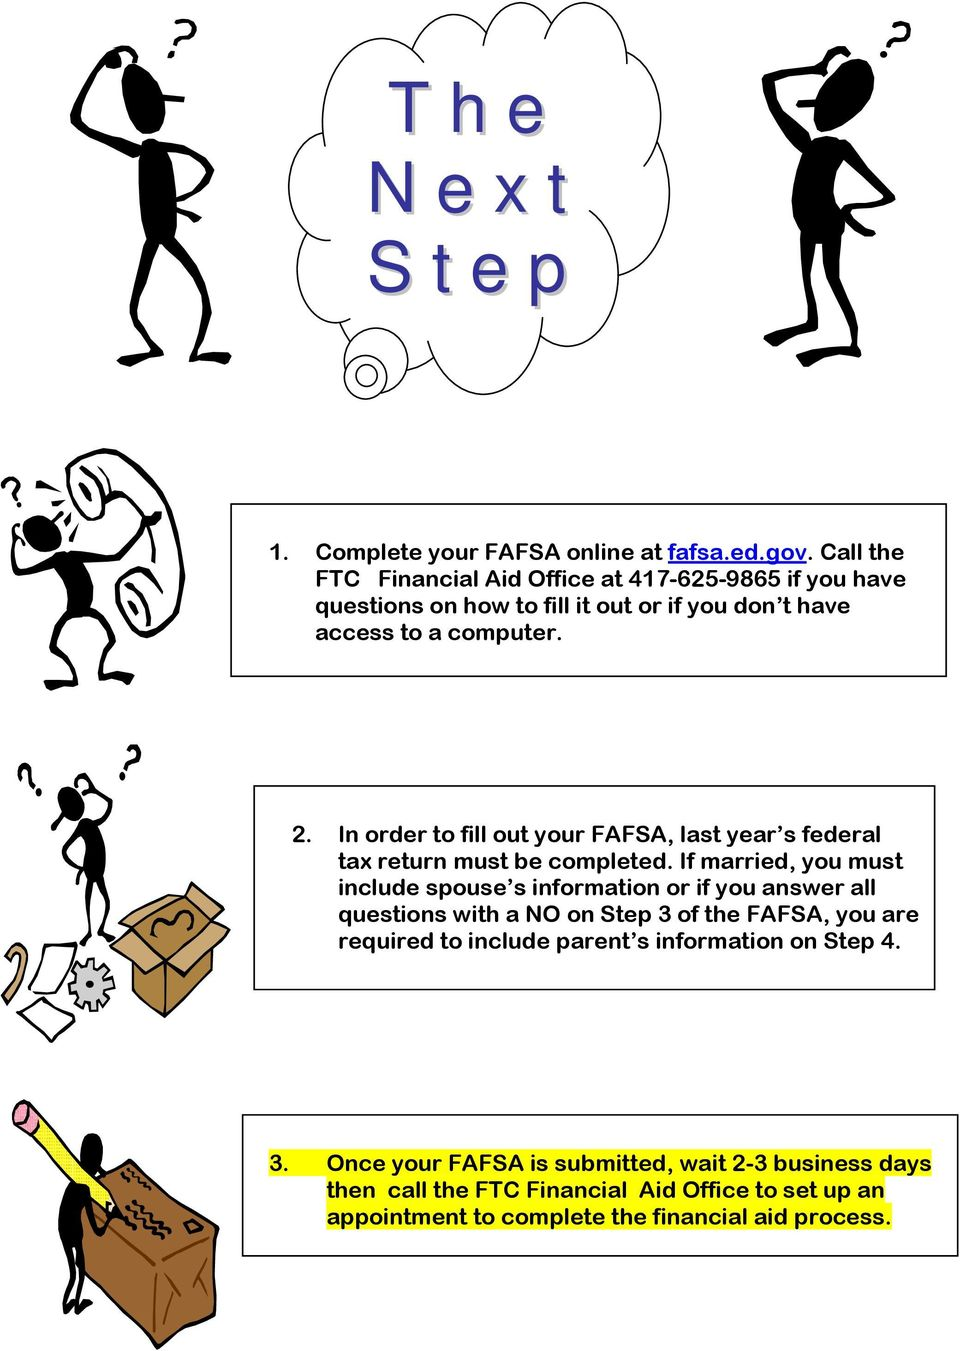 In order to fill out your FAFSA, last year s federal tax return must be completed.